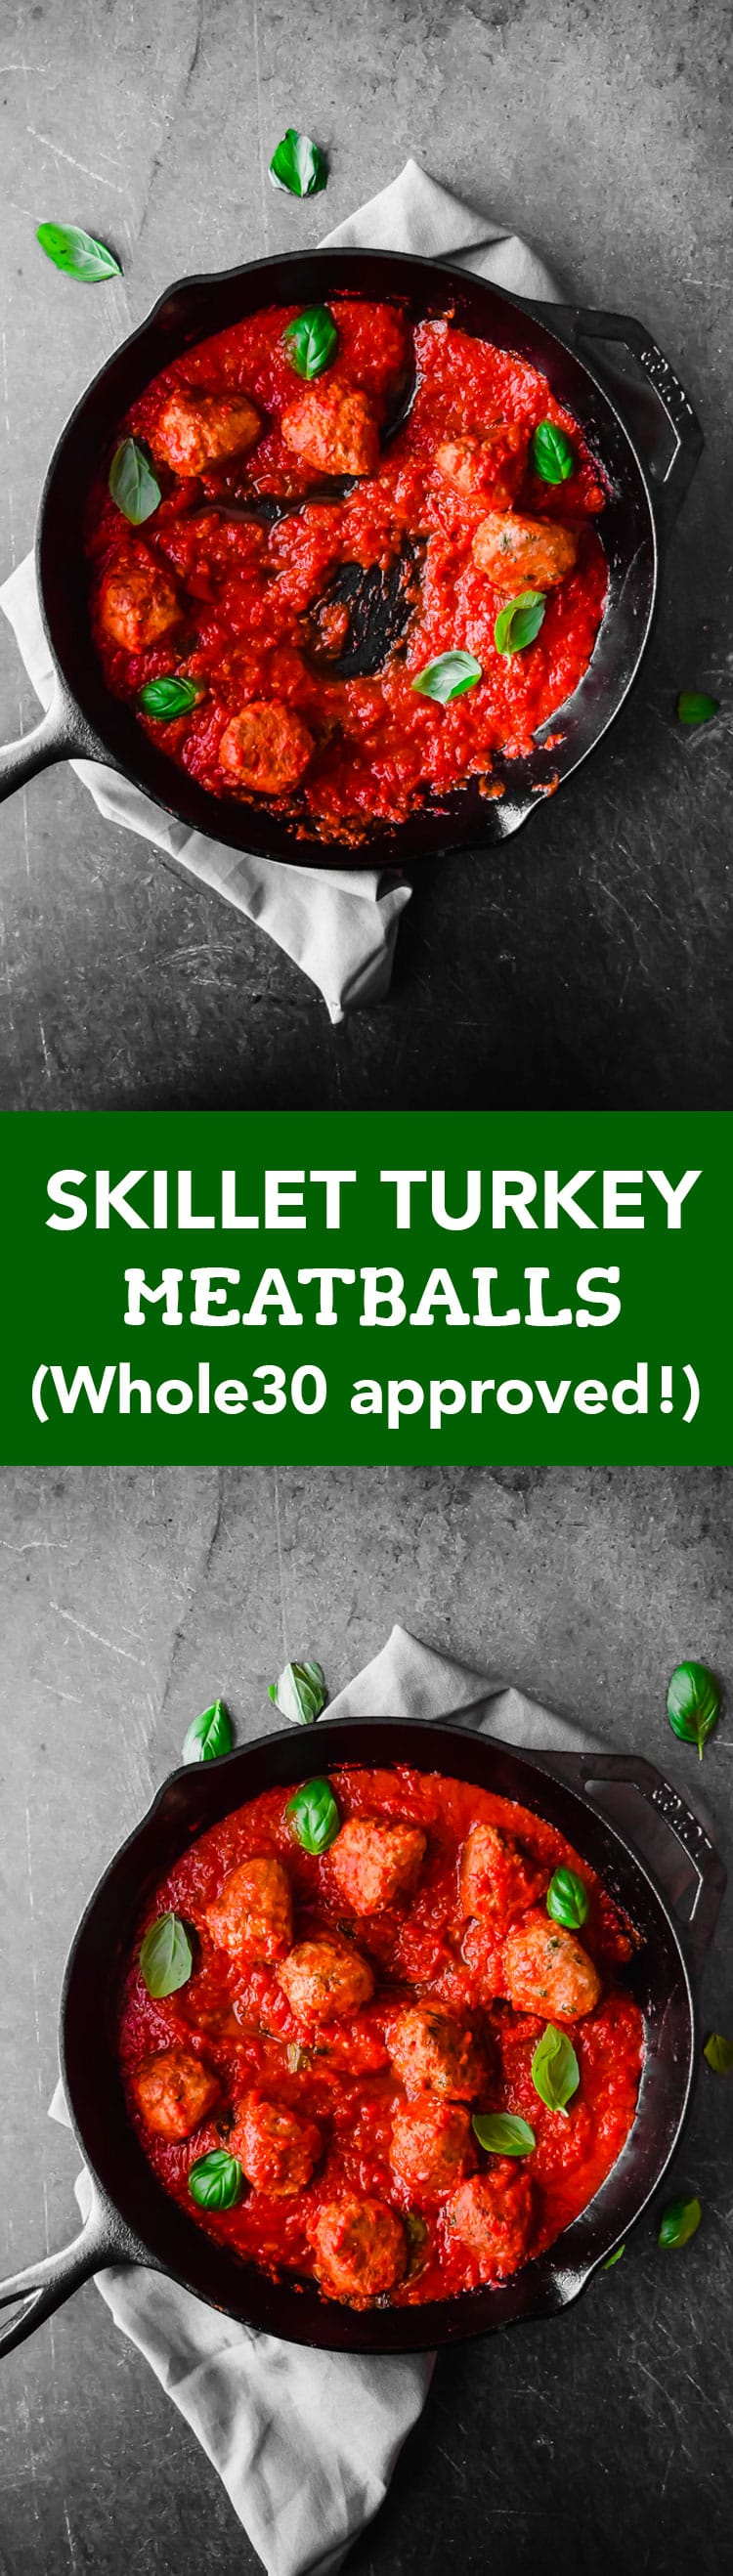 This is my favorite recipe for classic turkey meatballs in a skillet— perfectly spiced and hardly any work! Also Whole30 approved!